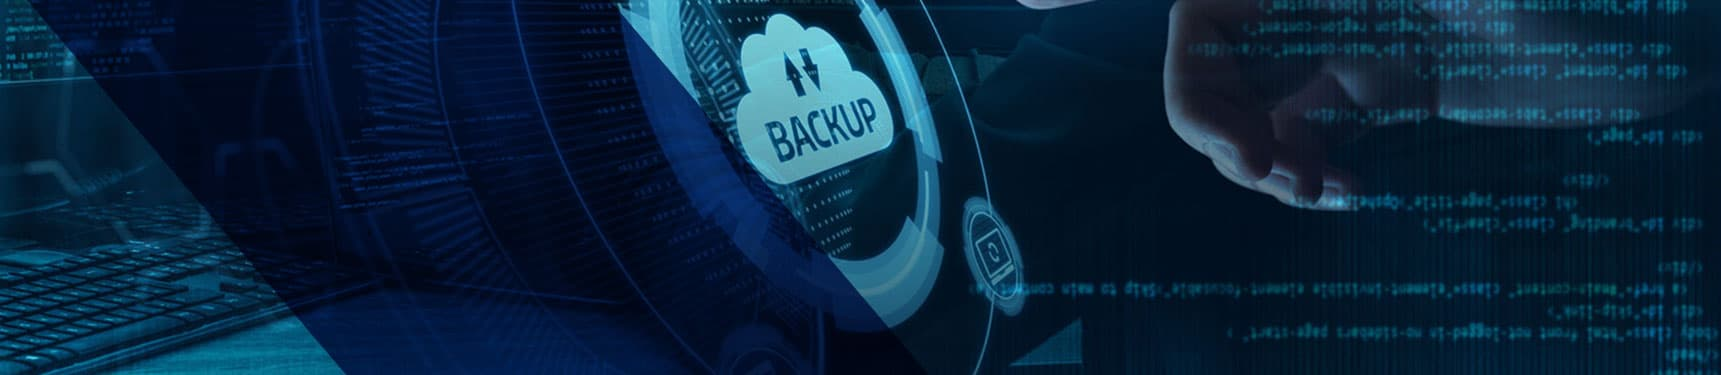 computer-backup-recovery